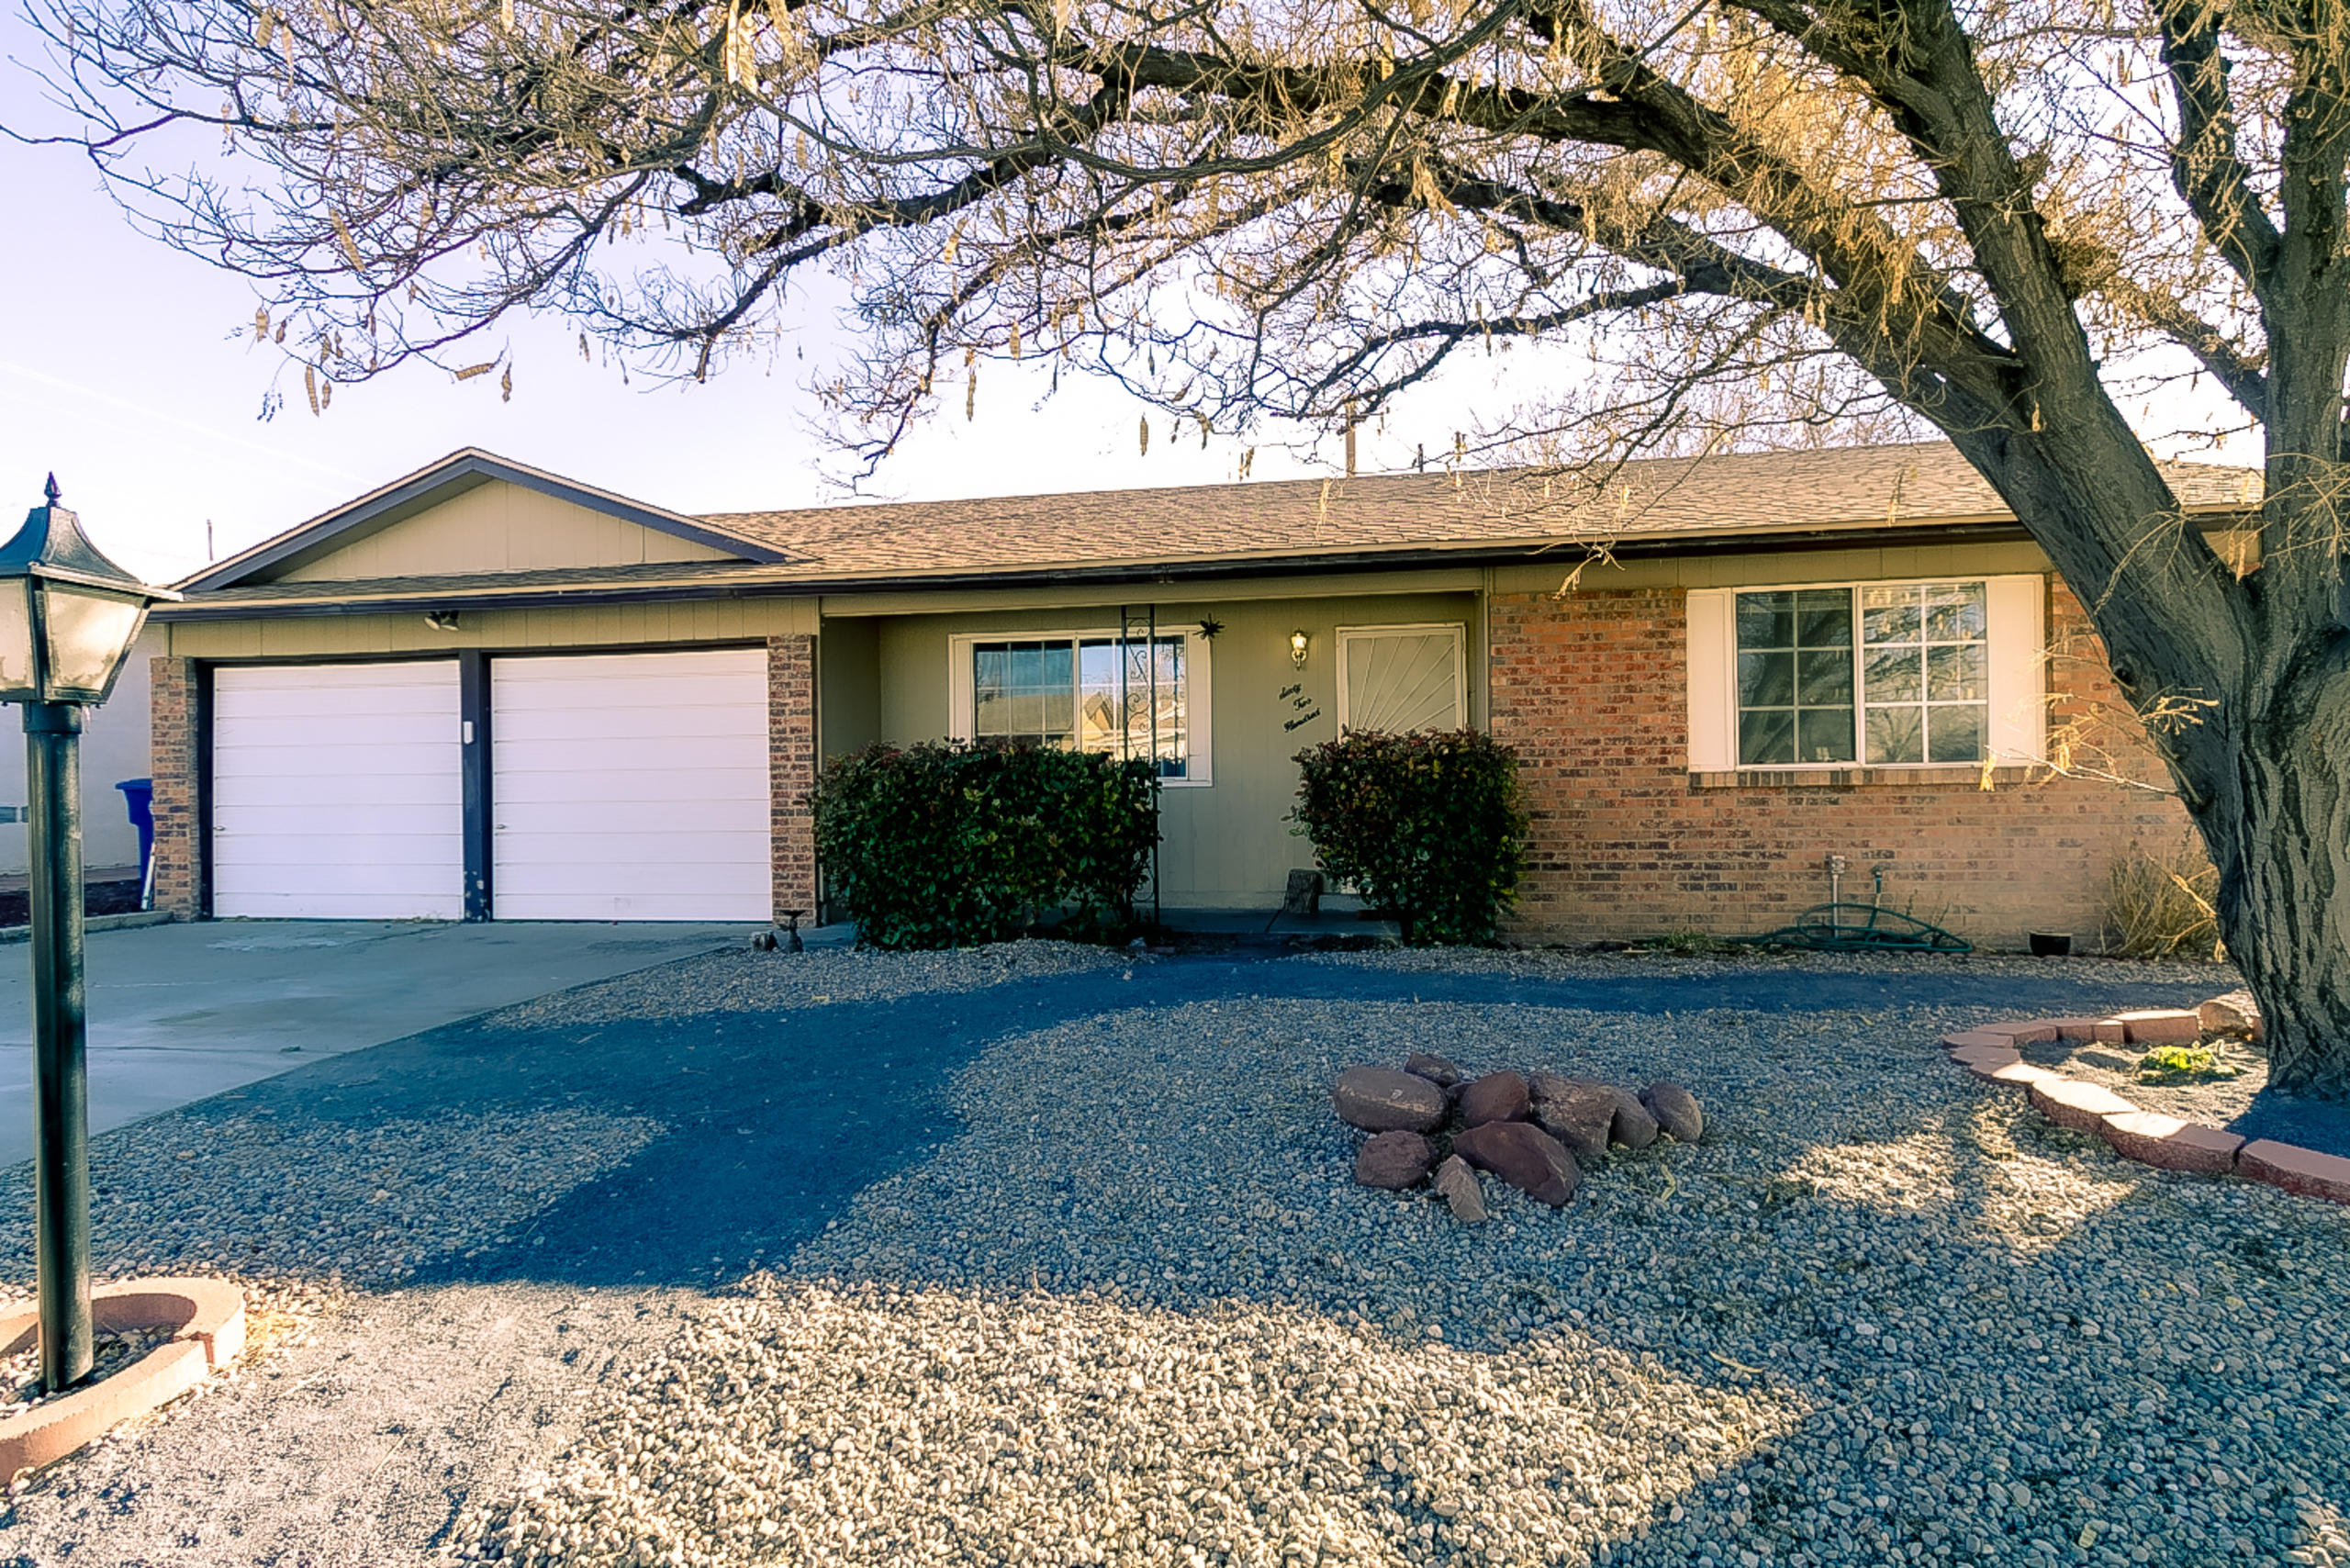 Looking for a fabulous Ranch Style home in NE Heights Albuquerque w/backyard access? Here it is! New Roof in 2017. Updated kitchen w/ shaker style cabinets, solid surface countertops w/ intergraded sink, large walk in pantry, breakfast nook & breakfast bar.  Beautiful laminate flooring in main living areas and hallway. New carpet in bedrooms. New interior paint. Cozy wood burning fireplace in family room. Owners suite w/  3/4 bath that includes a updated custom tile surround and new vanity. Good size secondary bedrooms. CFA heating. Master cool evaporative cooling. Home is situated on corner lot w/ backyard access. Designated kids play area in backyard. Large covered patio. Mature shade trees & low maintenance landscaping. Rare find in NE! Added rm in garage not incl in sq. ft.